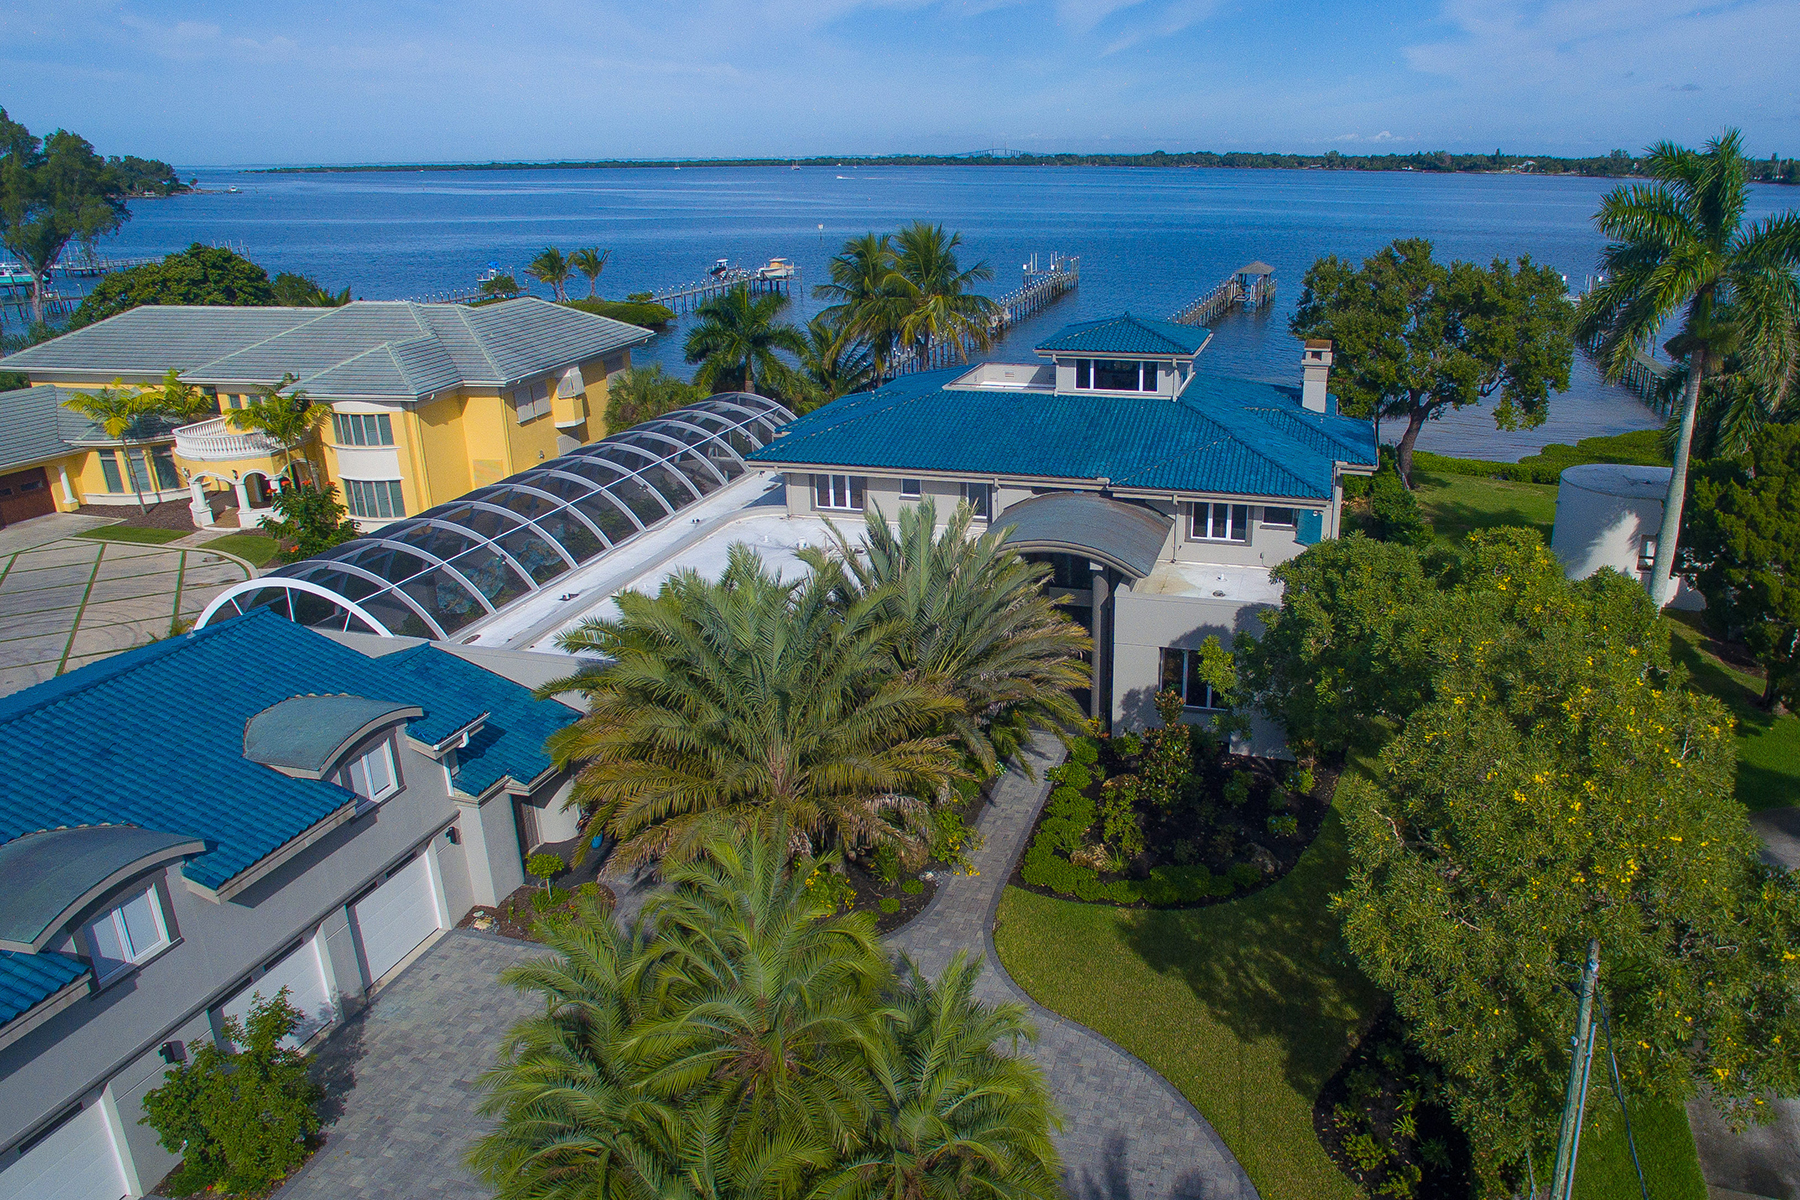 Single Family Home for Sale at MANATEE RIVER REGION 6302 Riverview Blvd Bradenton, Florida 34209 United States